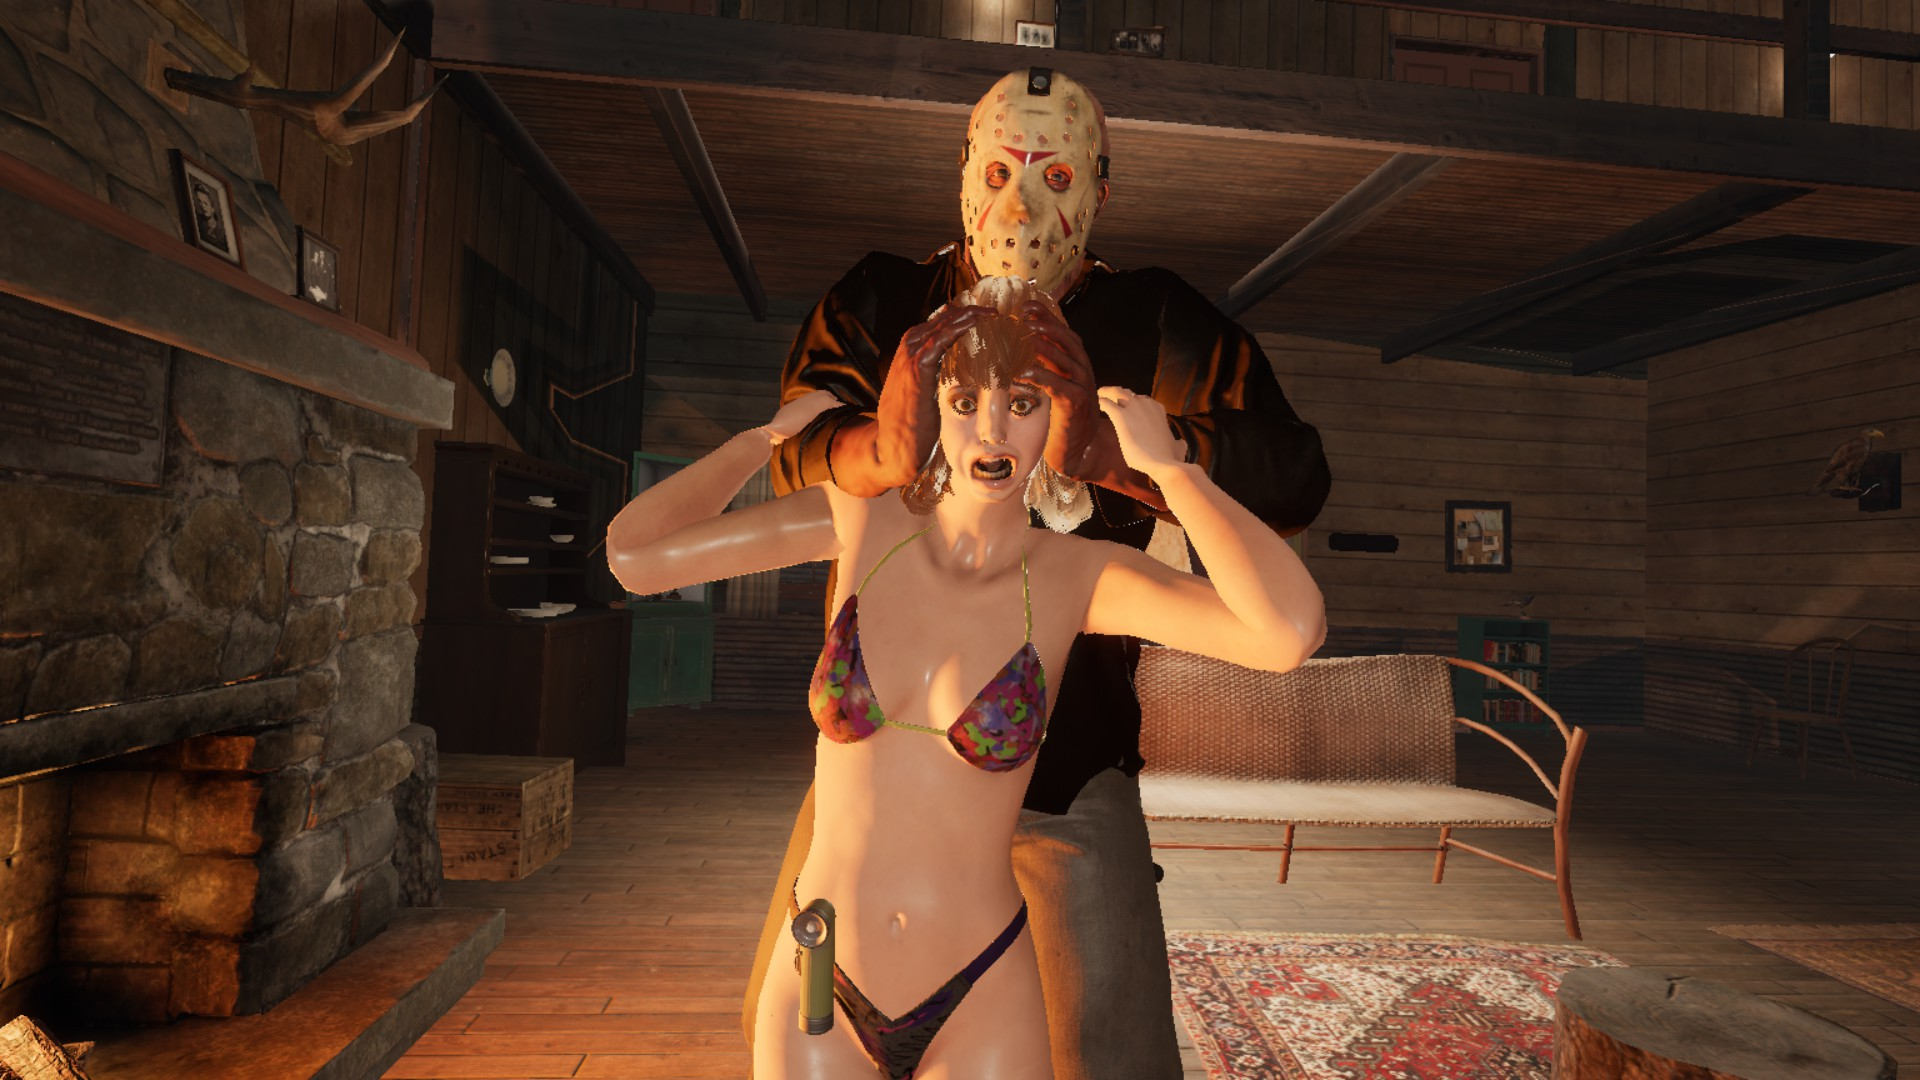 20200226191334_1.jpg - Friday the 13th: The Game